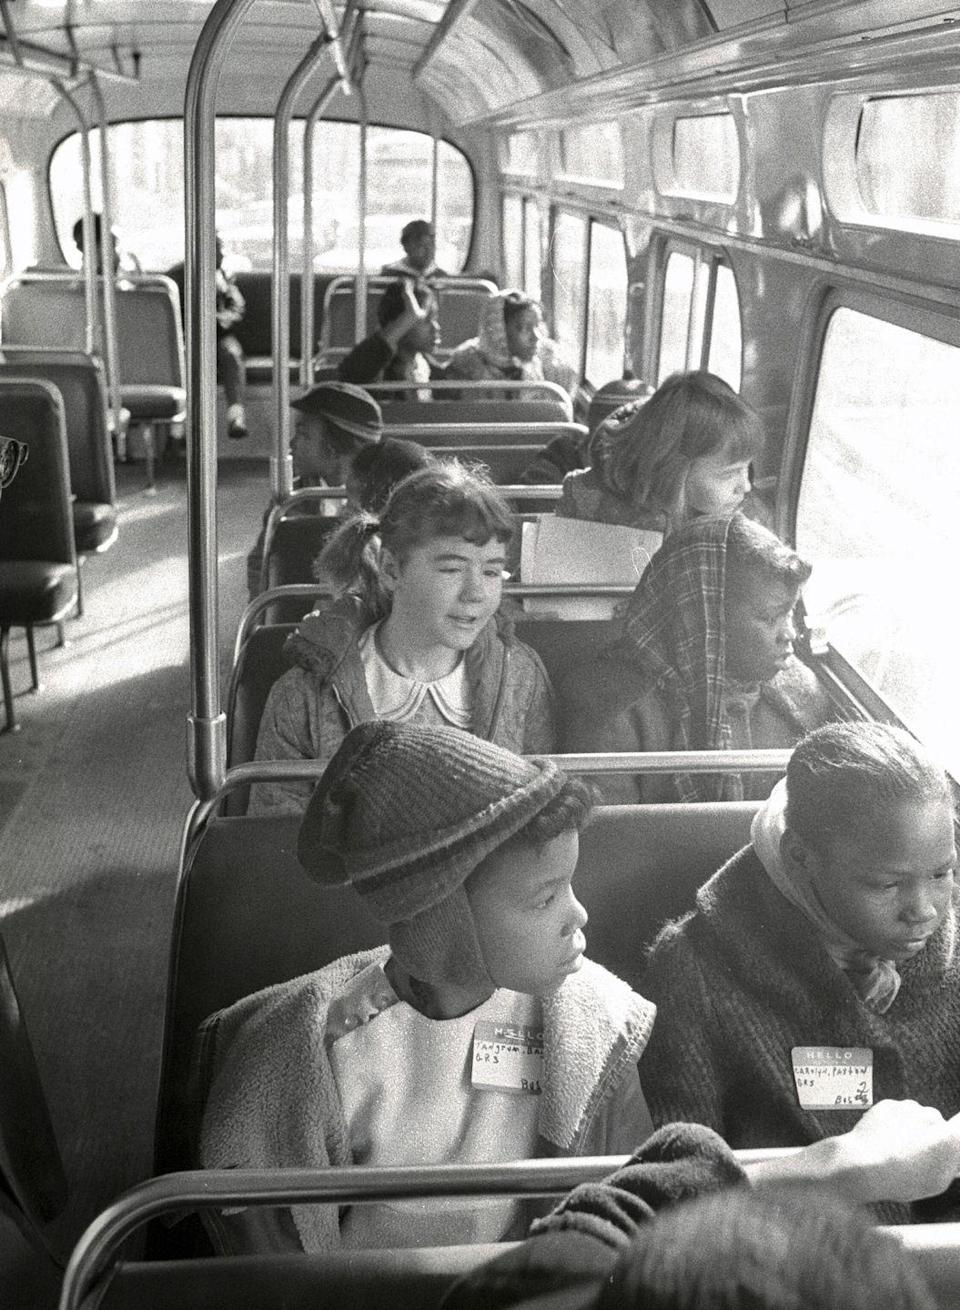 <p>Kids chat with one another on the school bus together.</p>